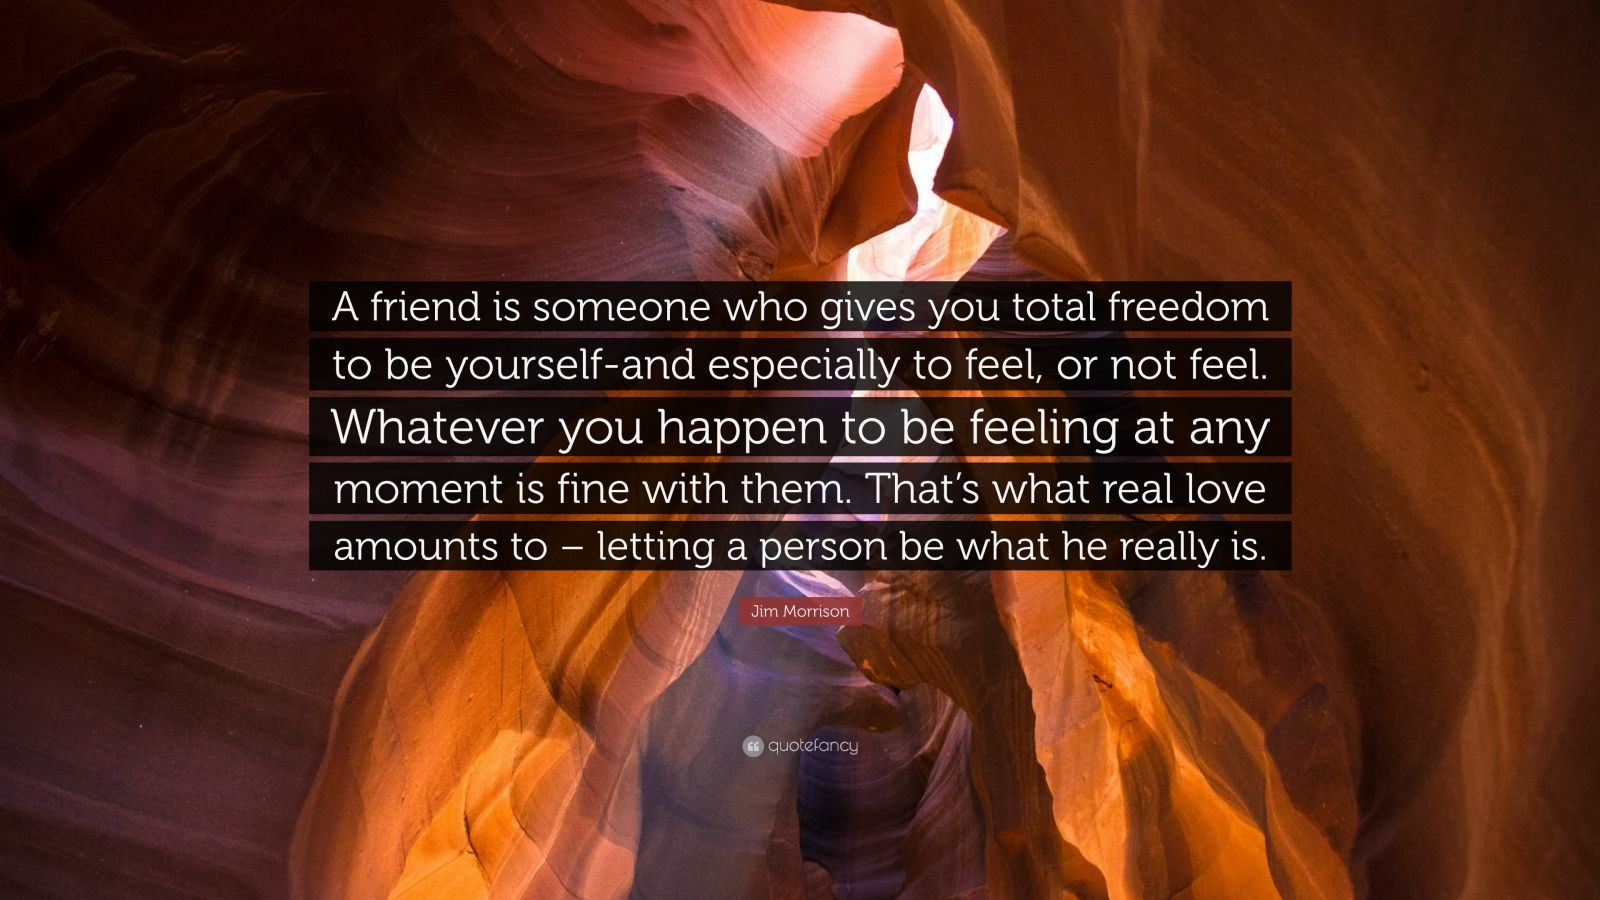 """Jim Morrison Quote: """"A friend is someone who gives you total freedom to be yourself-and especially to feel, or not feel. Whatever you happen to be feeling at any moment is fine with them. That's what real love amounts to – letting a person be what he really is."""""""